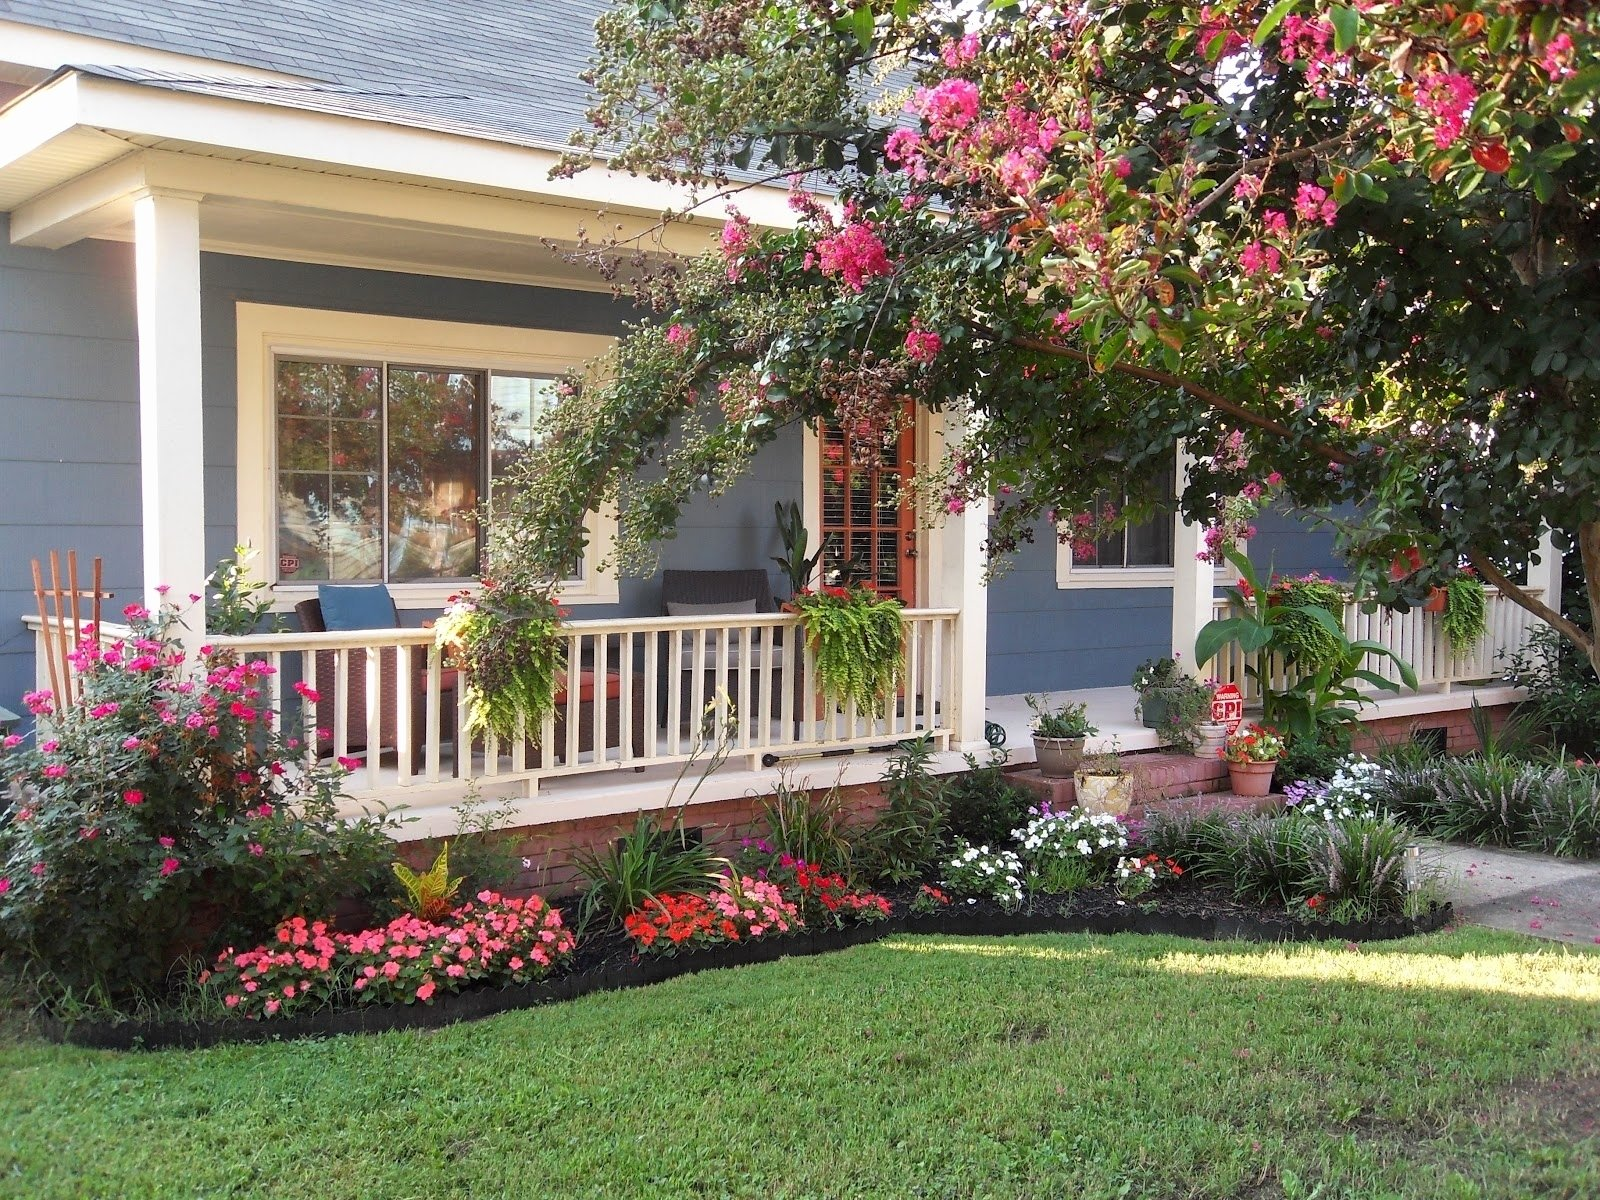 approved simple front yard landscaping ideas picture 37 of 46